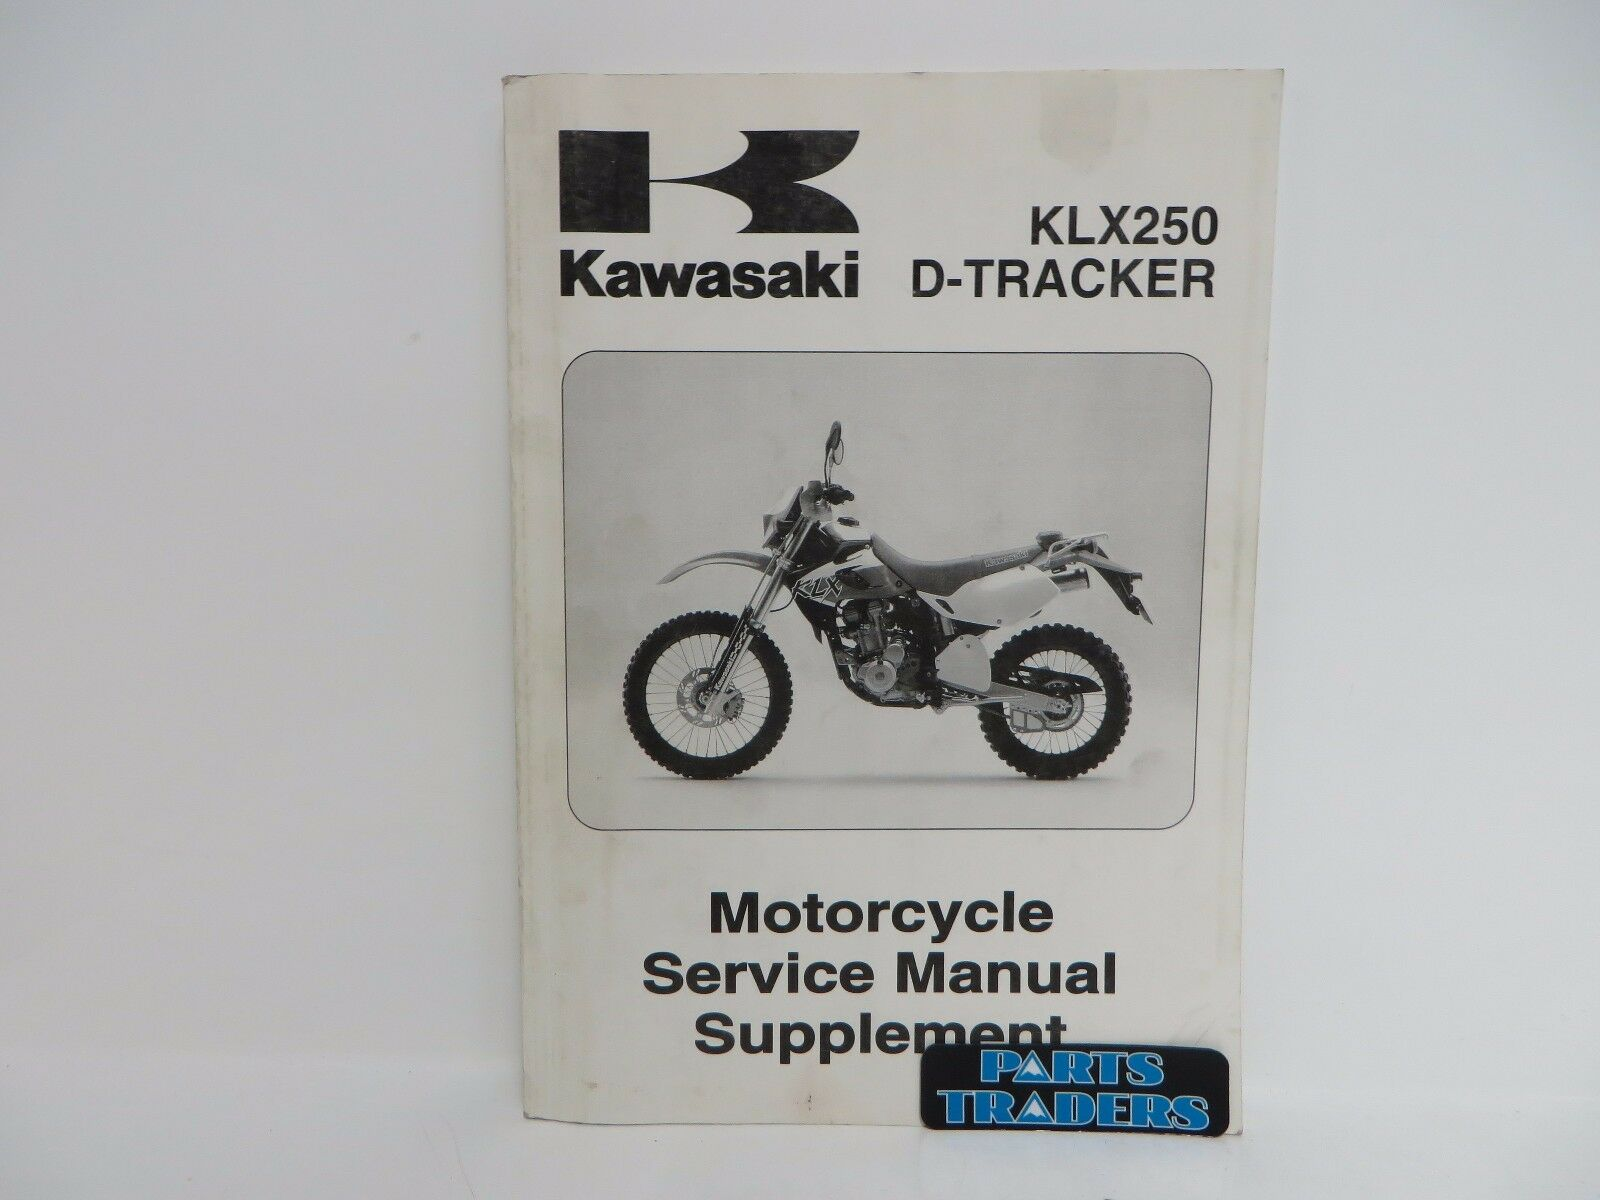 Genuine Kawasaki Service Manual Supplement KLX250 KLX 250 D-Tracker  1999-2005 1 of 1Only 1 available ...